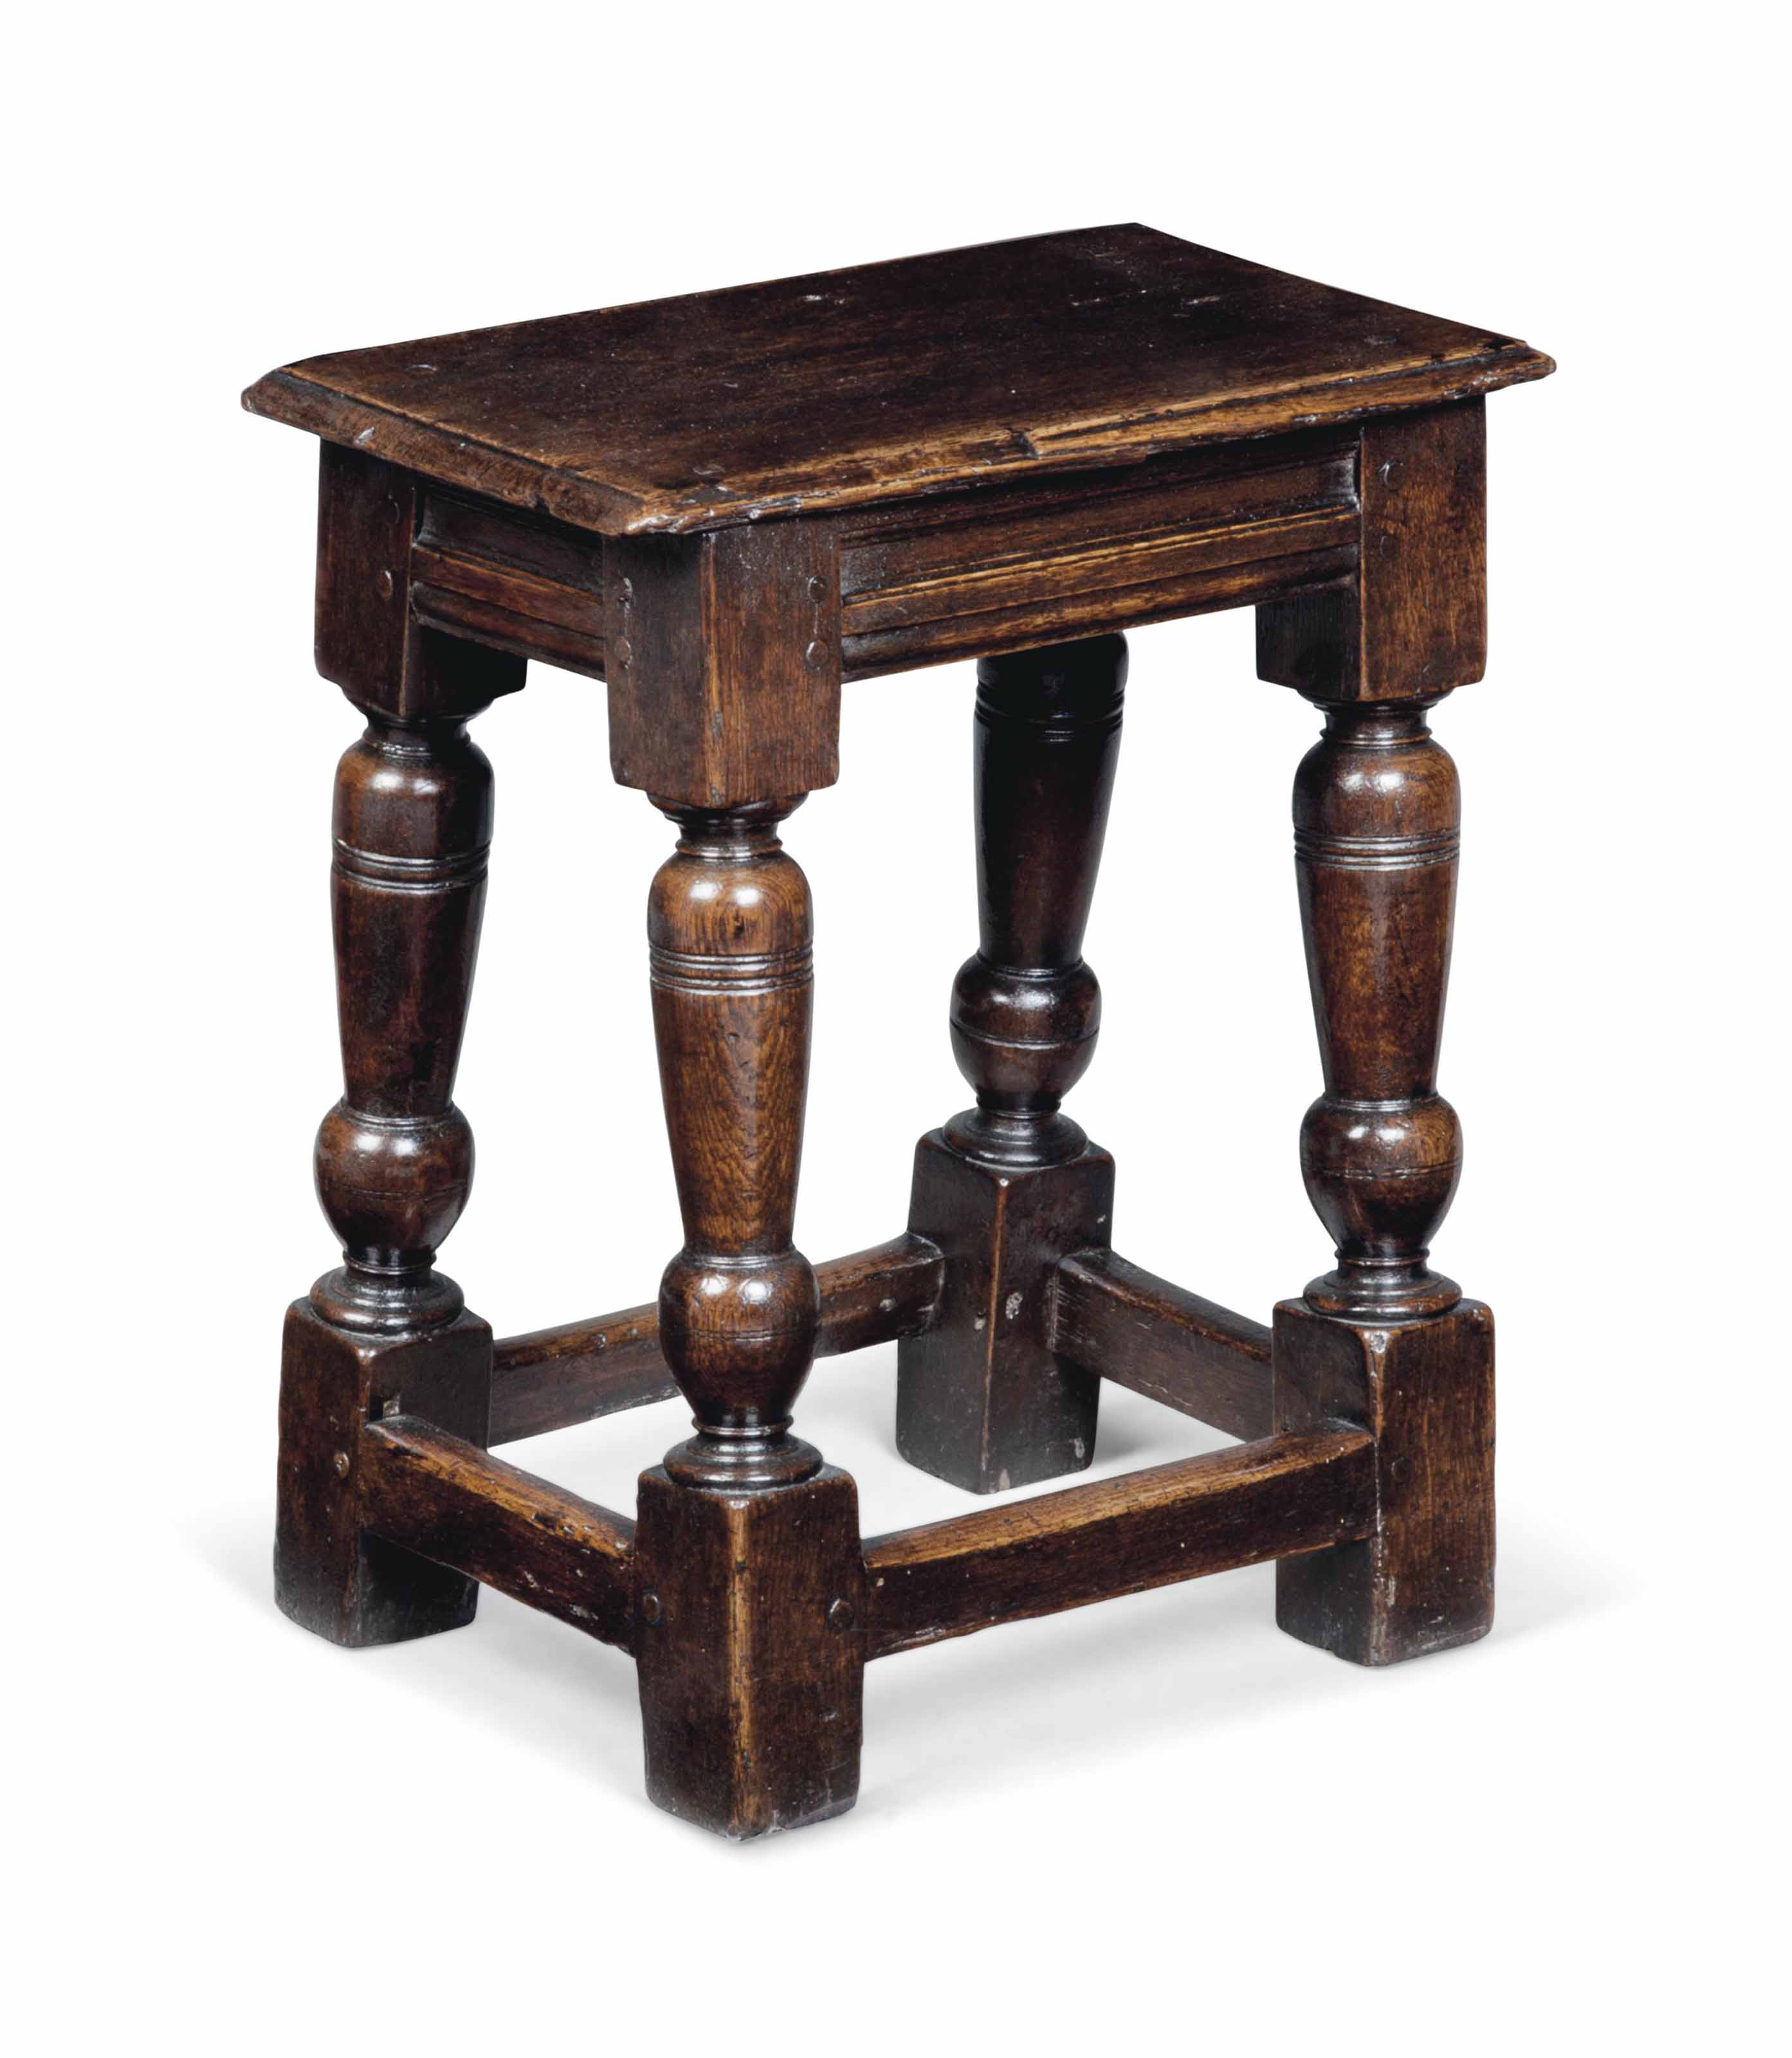 A CHARLES I OAK JOINED STOOL